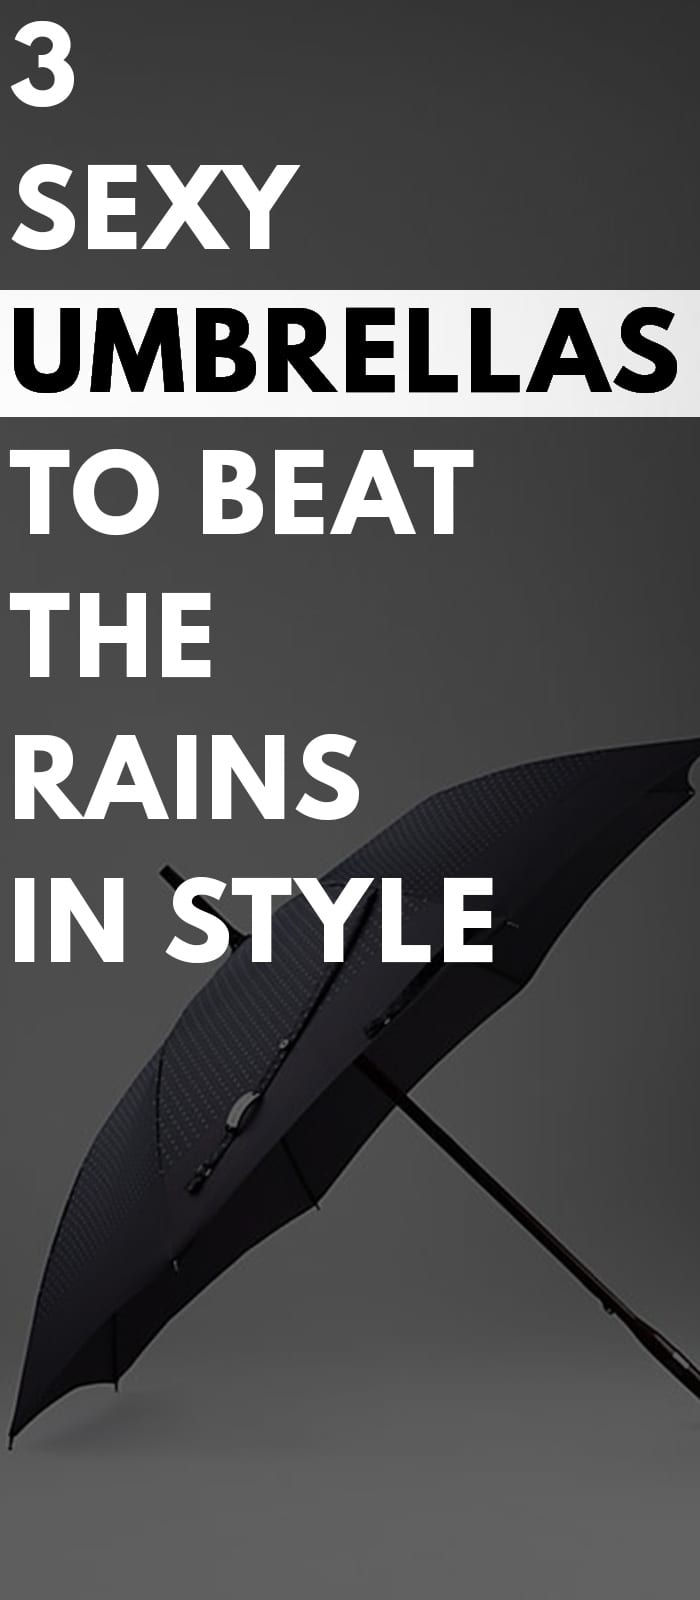 3-Sexy-Umbrellas-to-Beat-The-Rains-In-Style